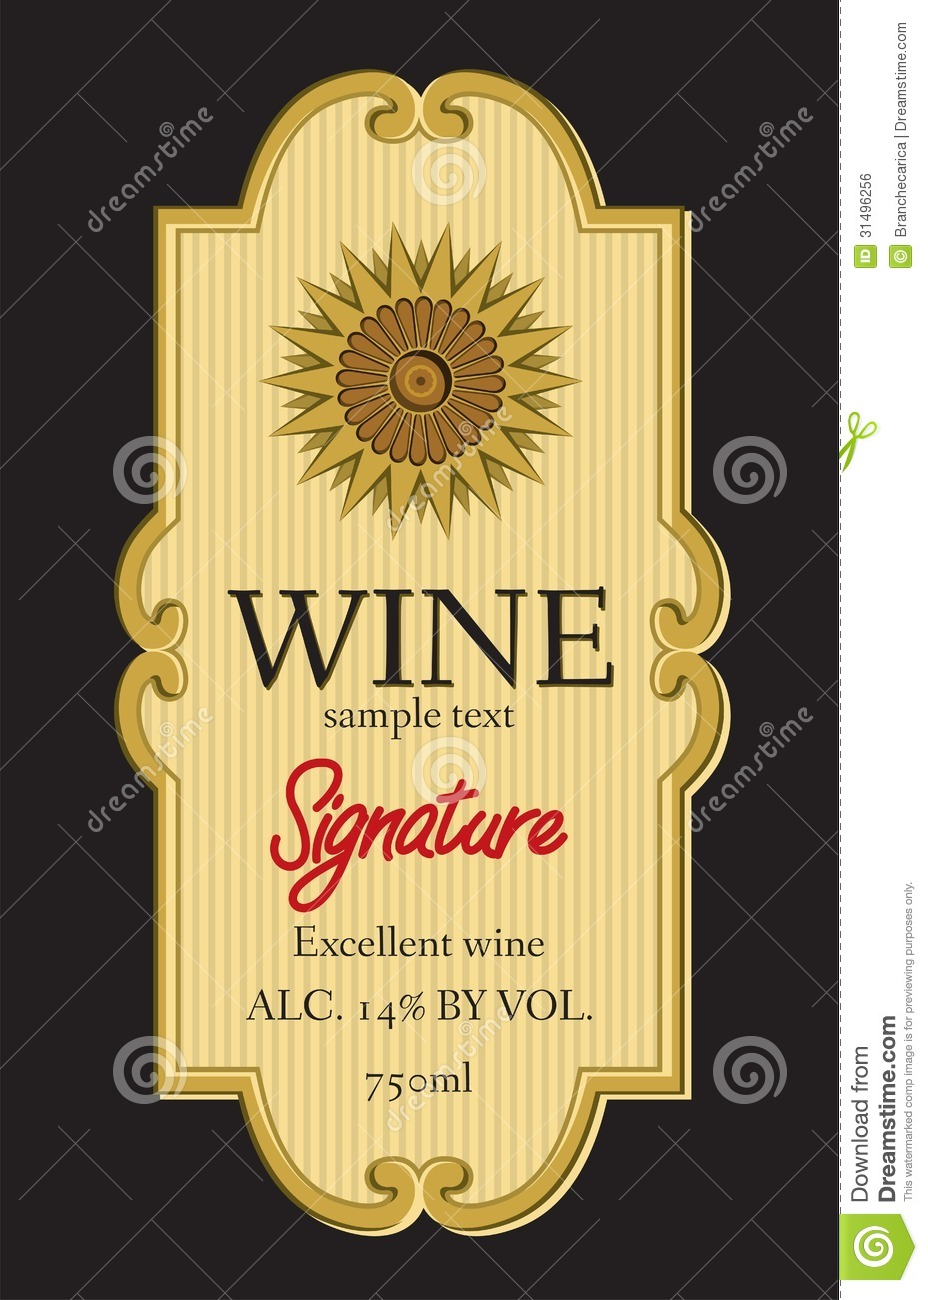 image relating to Free Printable Wine Bottle Label called wine bottle label template -